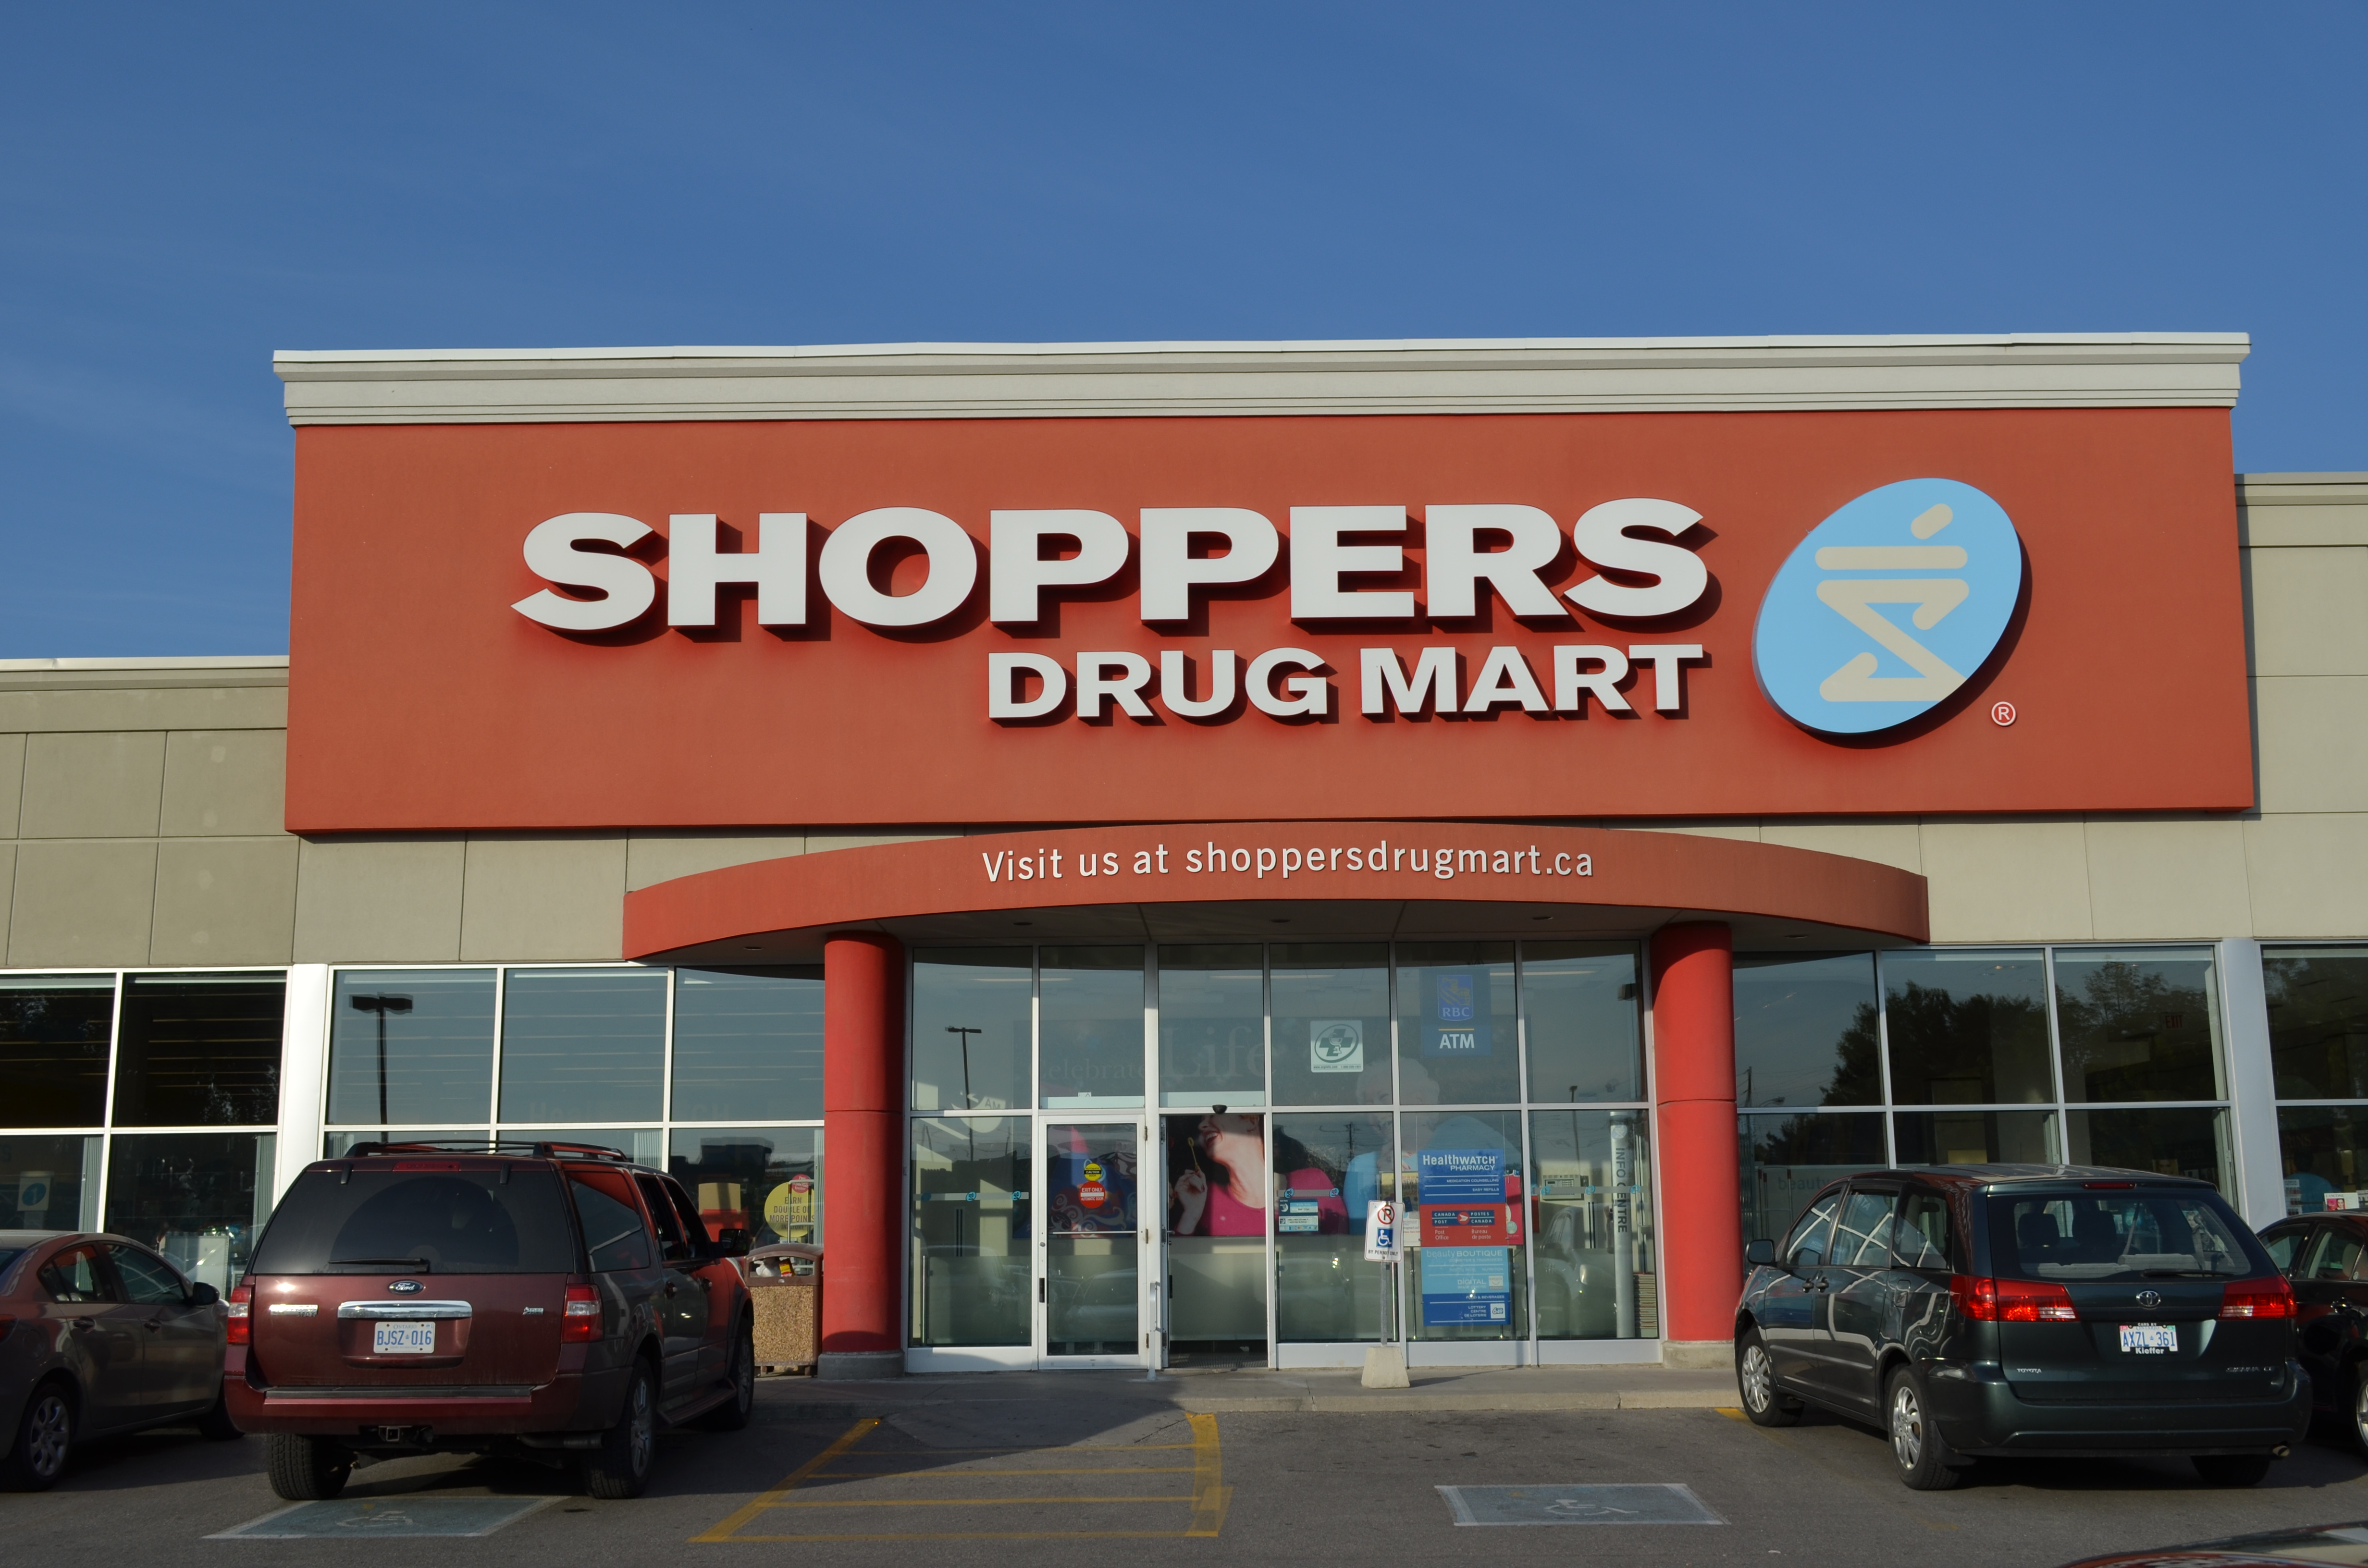 Discount Drug Mart - ALLIANCE RD. N.W., Minerva, Ohio - Rated based on 4 Reviews